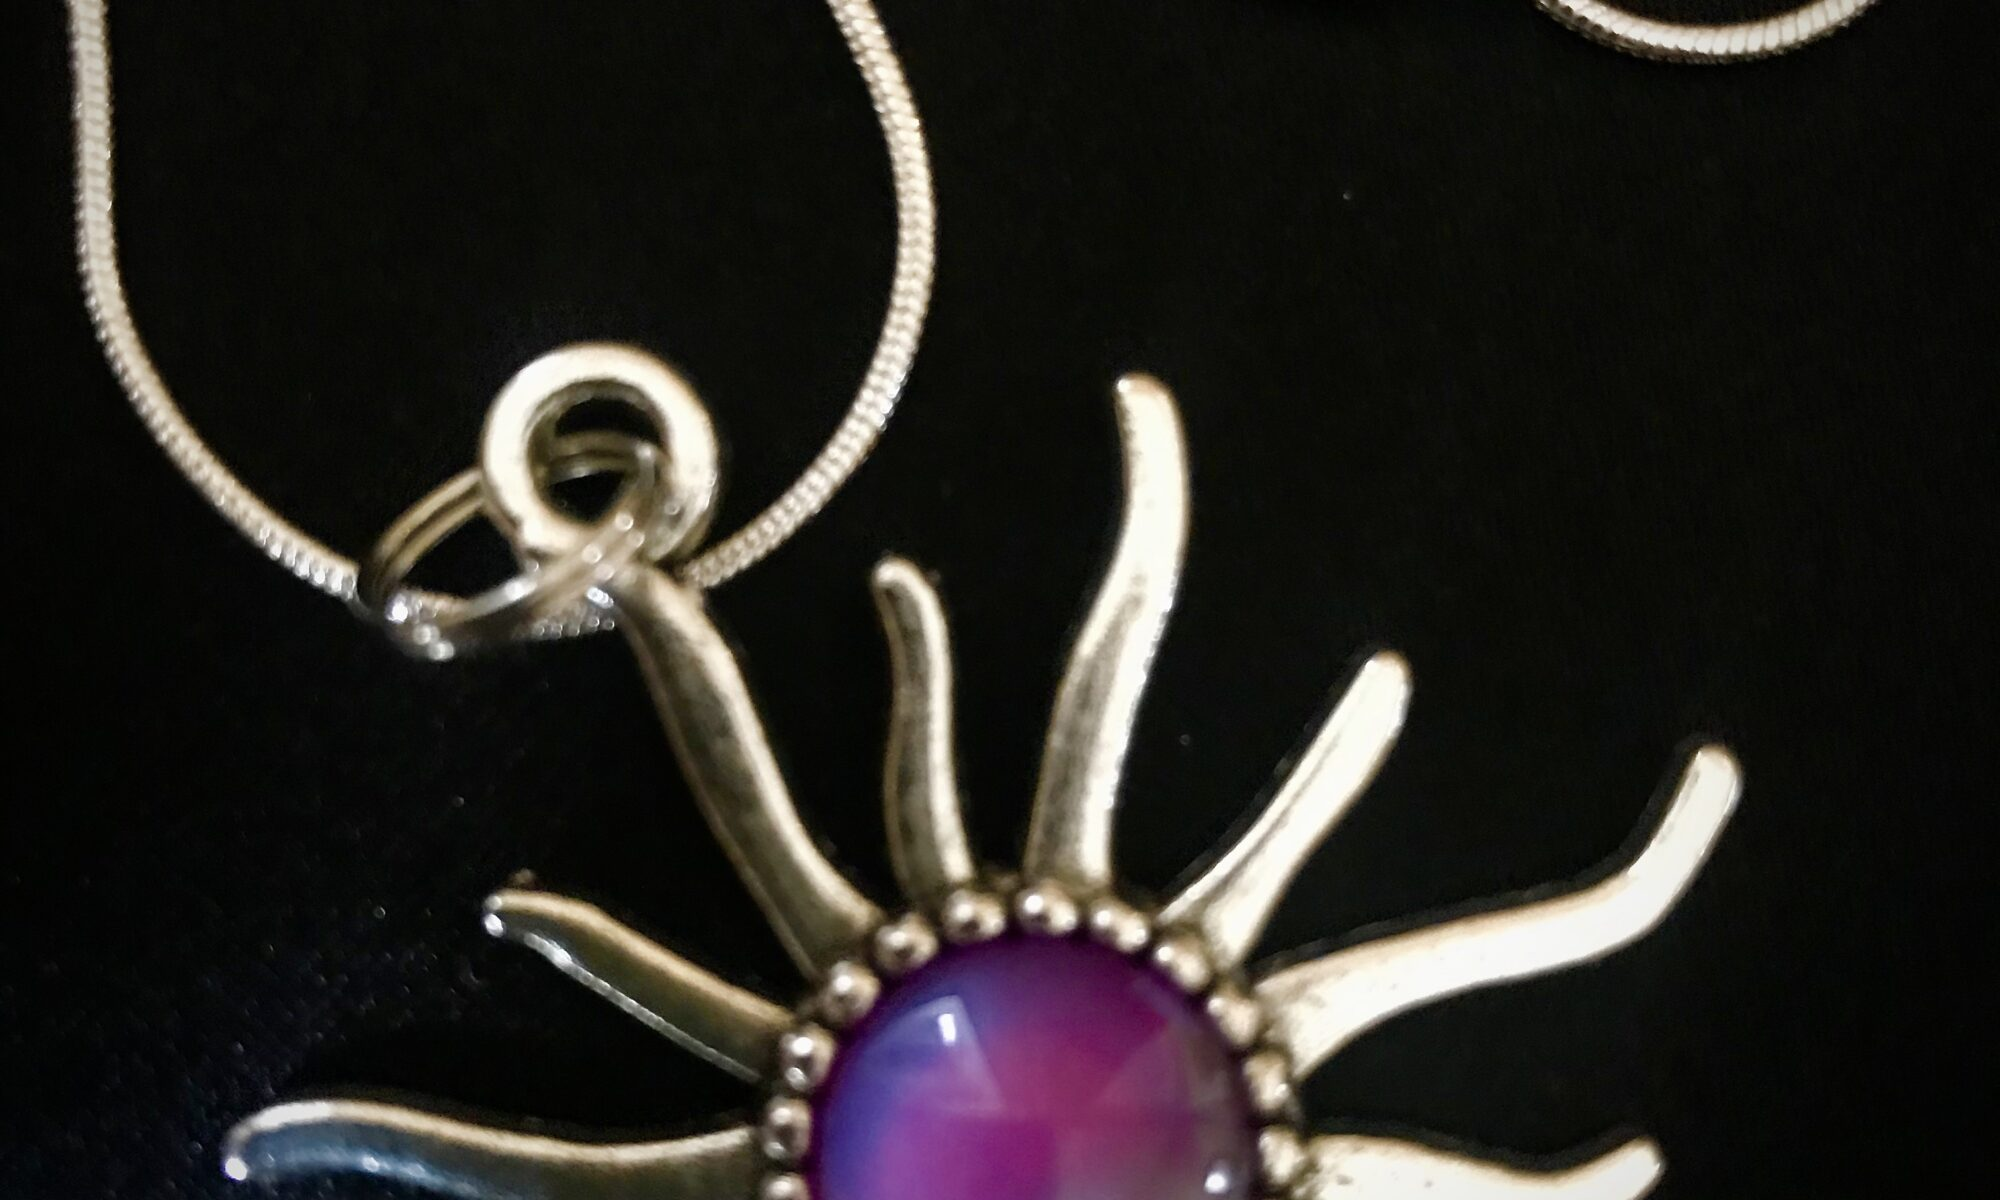 Jewelry - Silver necklace with purple sunburst